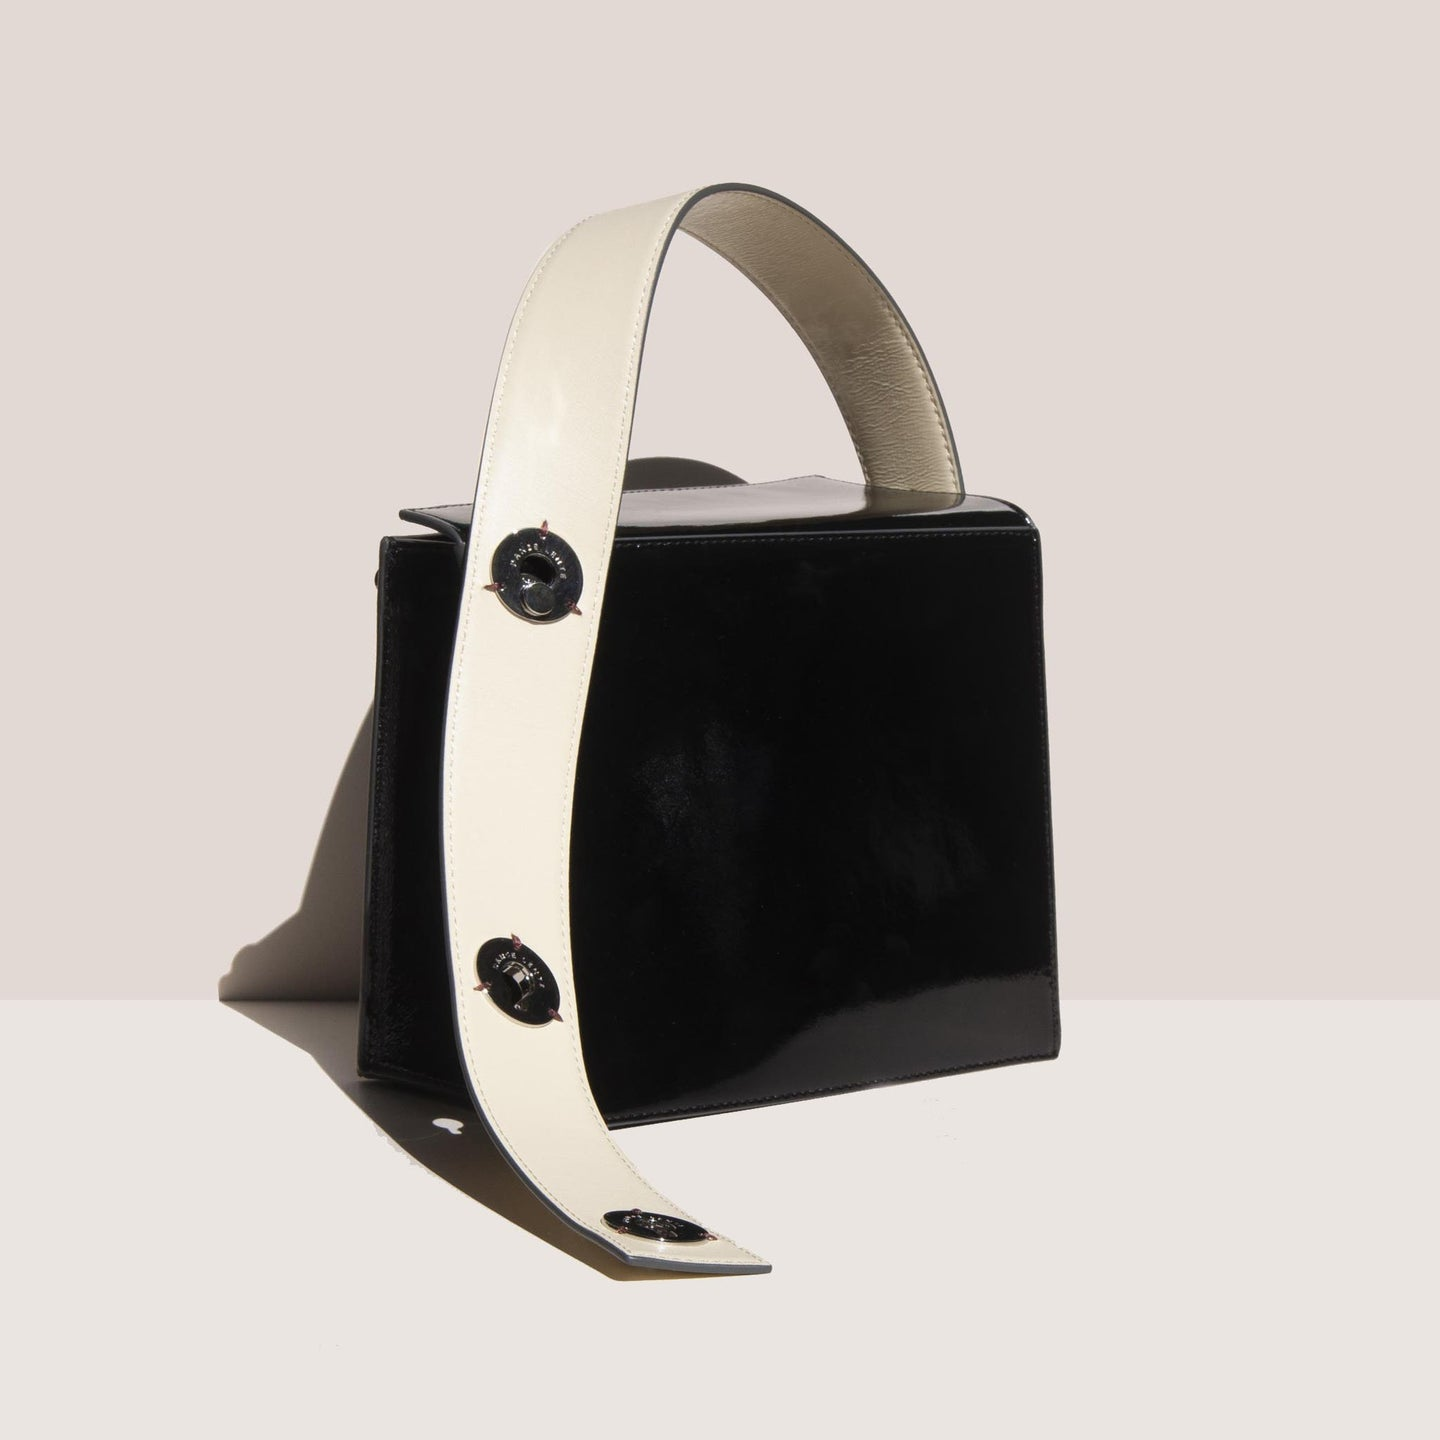 Danse Lente - Zoe Bag - Black/Buttercream, angled view, available at LCD.